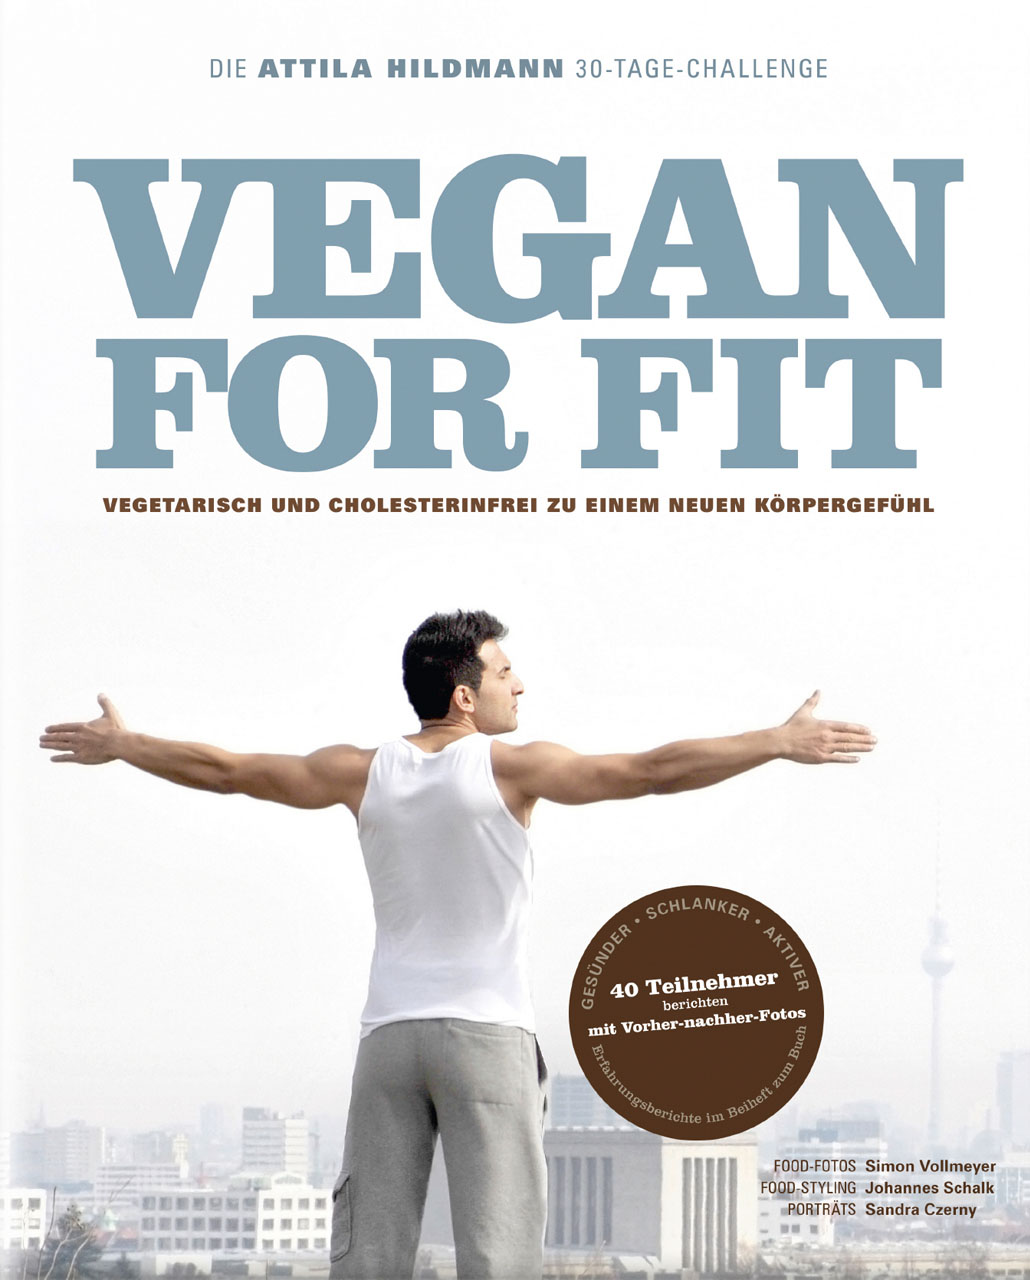 Buch-Cover: Vegan for Fit (von Attila Hildmann)